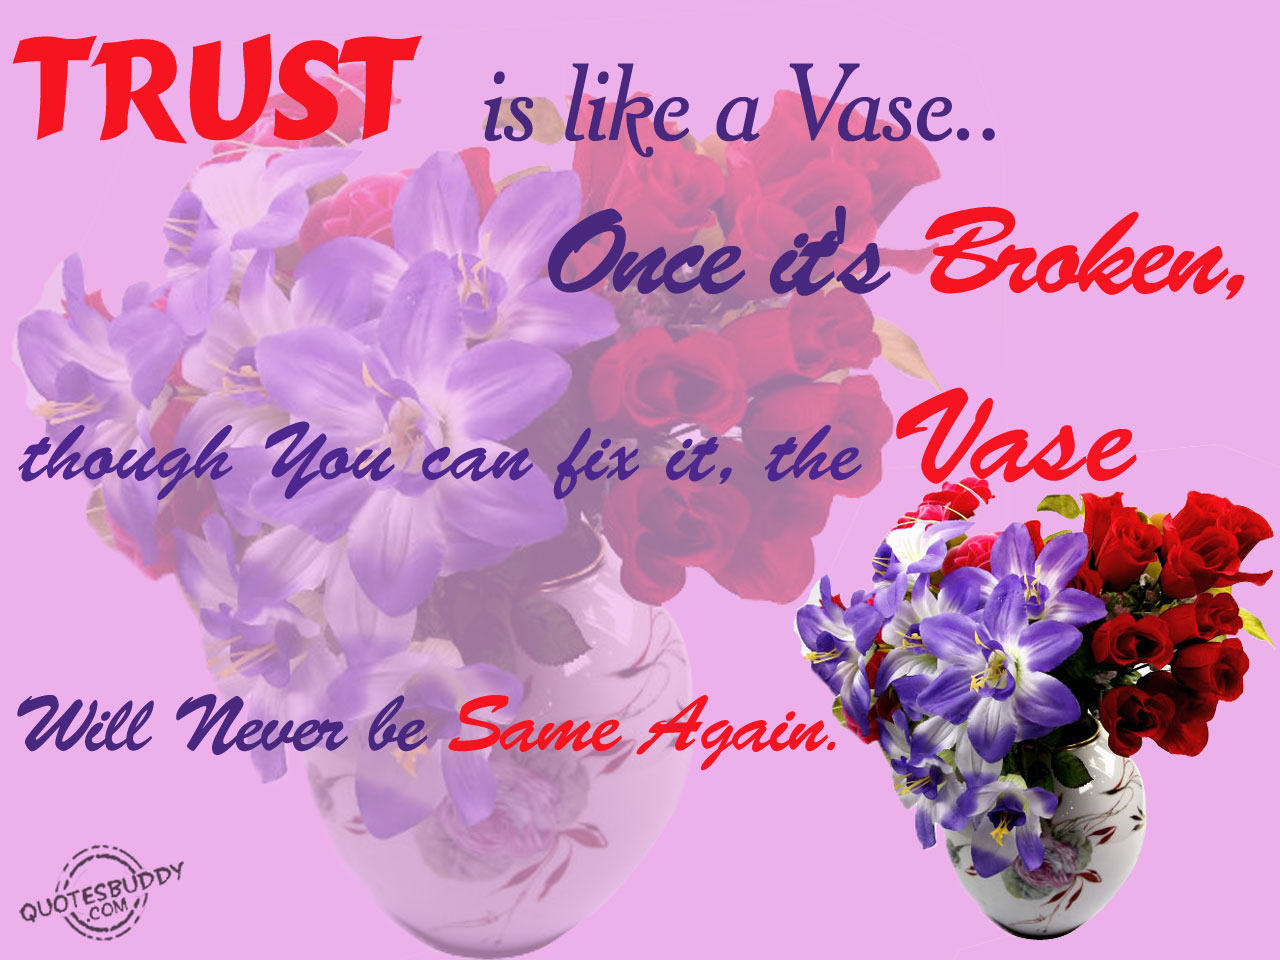 Trust Is Like A Vase, Once It's Broken, Though You Can Fix It, The Vase Will Never Be Same Again